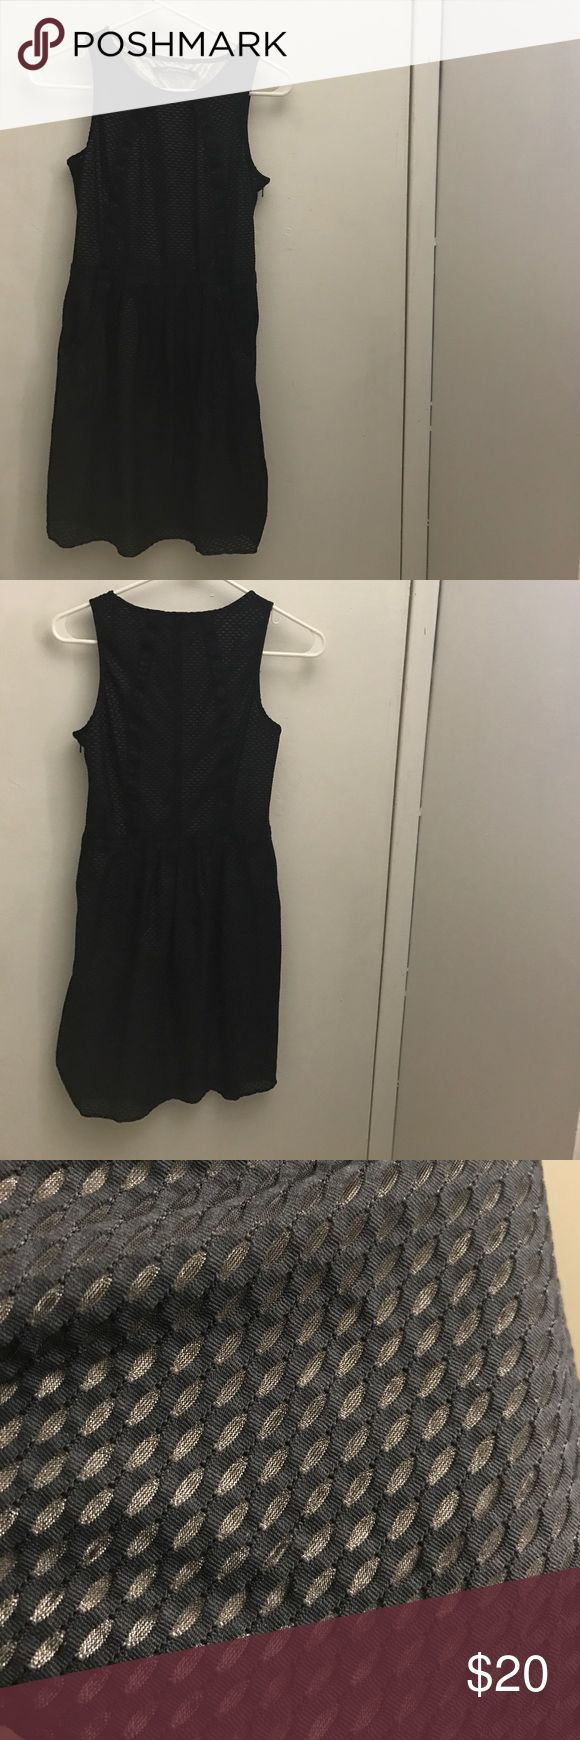 Andrew Marc dress - size 4 Andrew Marc dress in size 4. Good condition. No trades. Andrew Marc Dresses